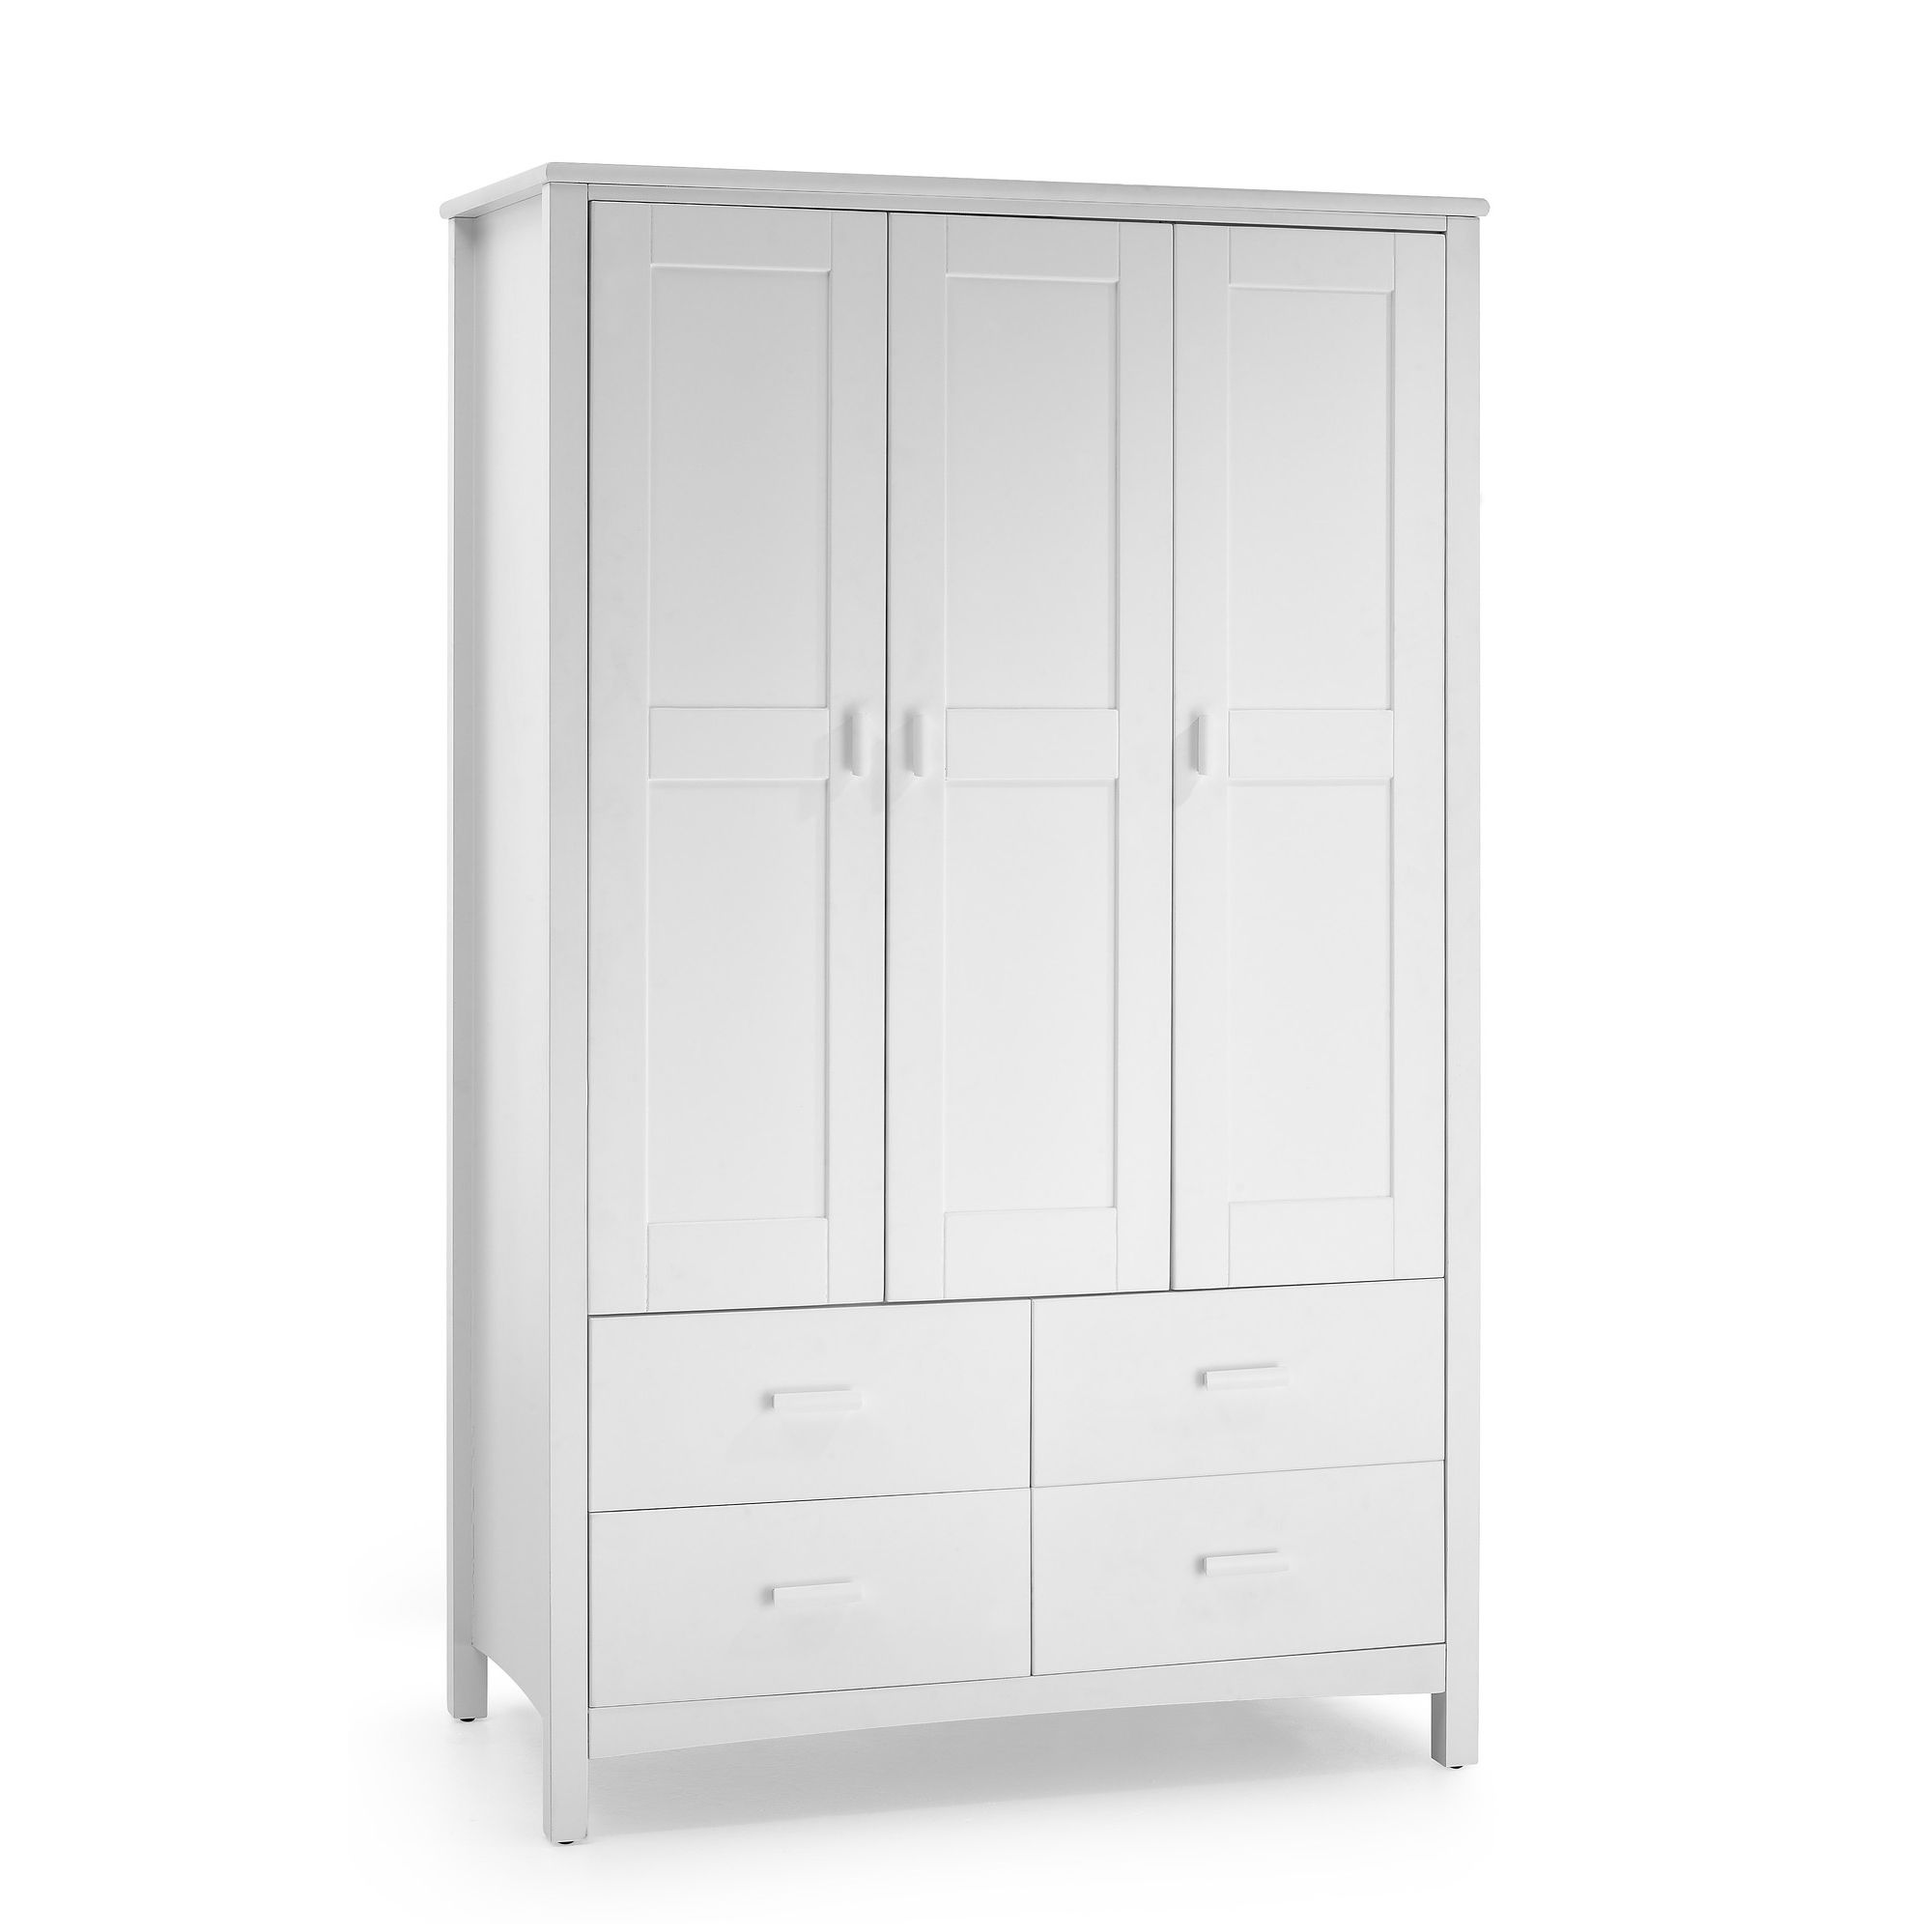 Serene Furnishings Eleanor 3 Door Wardrobe - Opal White at Tesco Direct